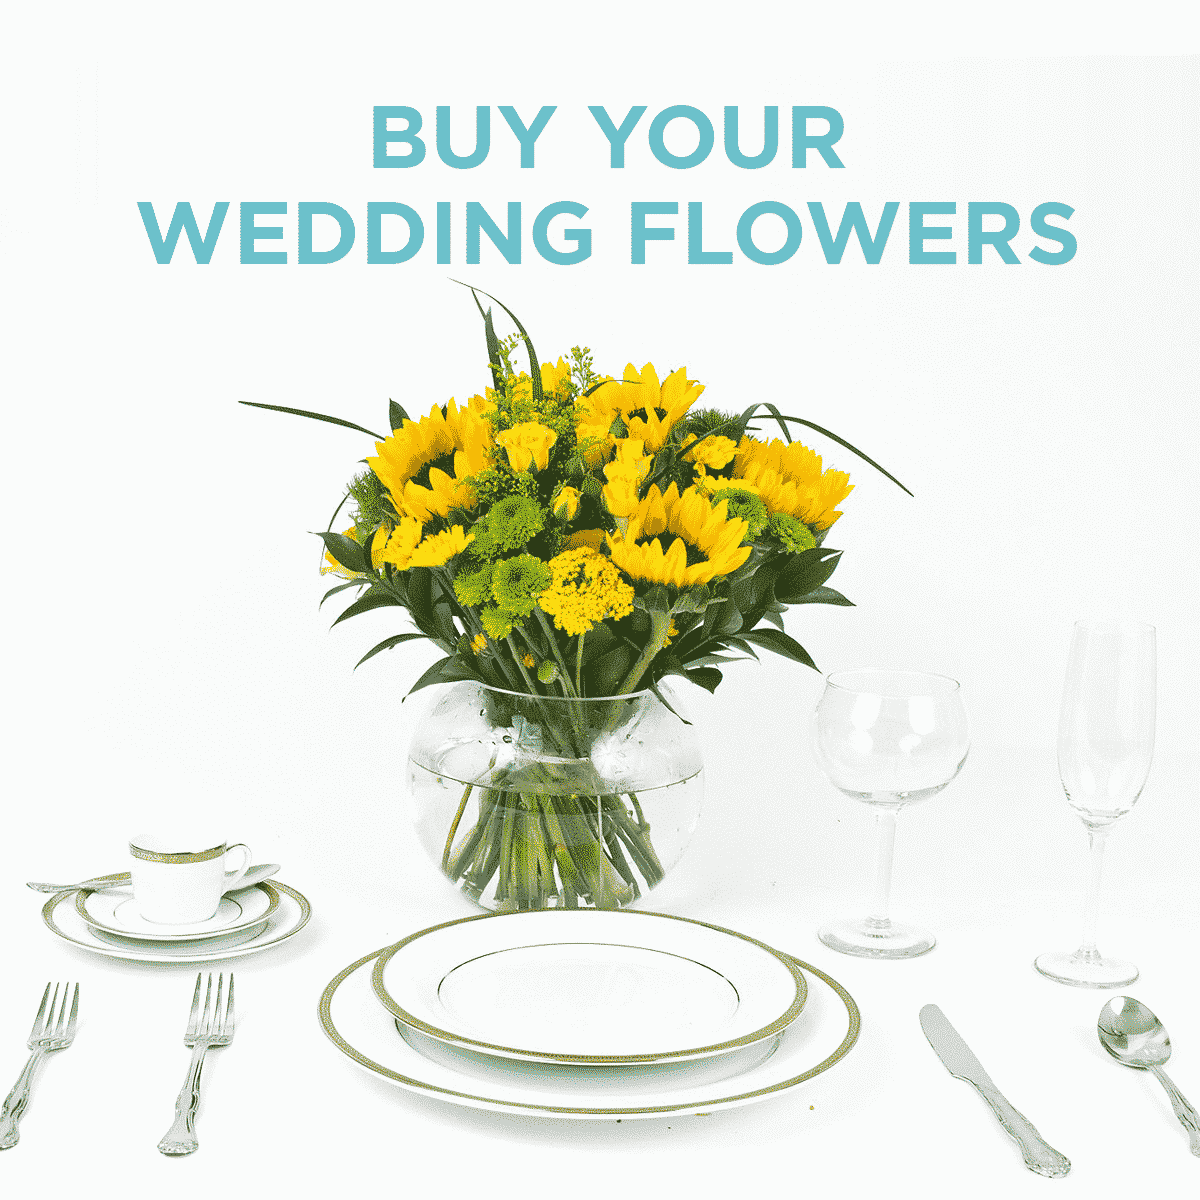 Buy your wedding flowers at Sam's Club